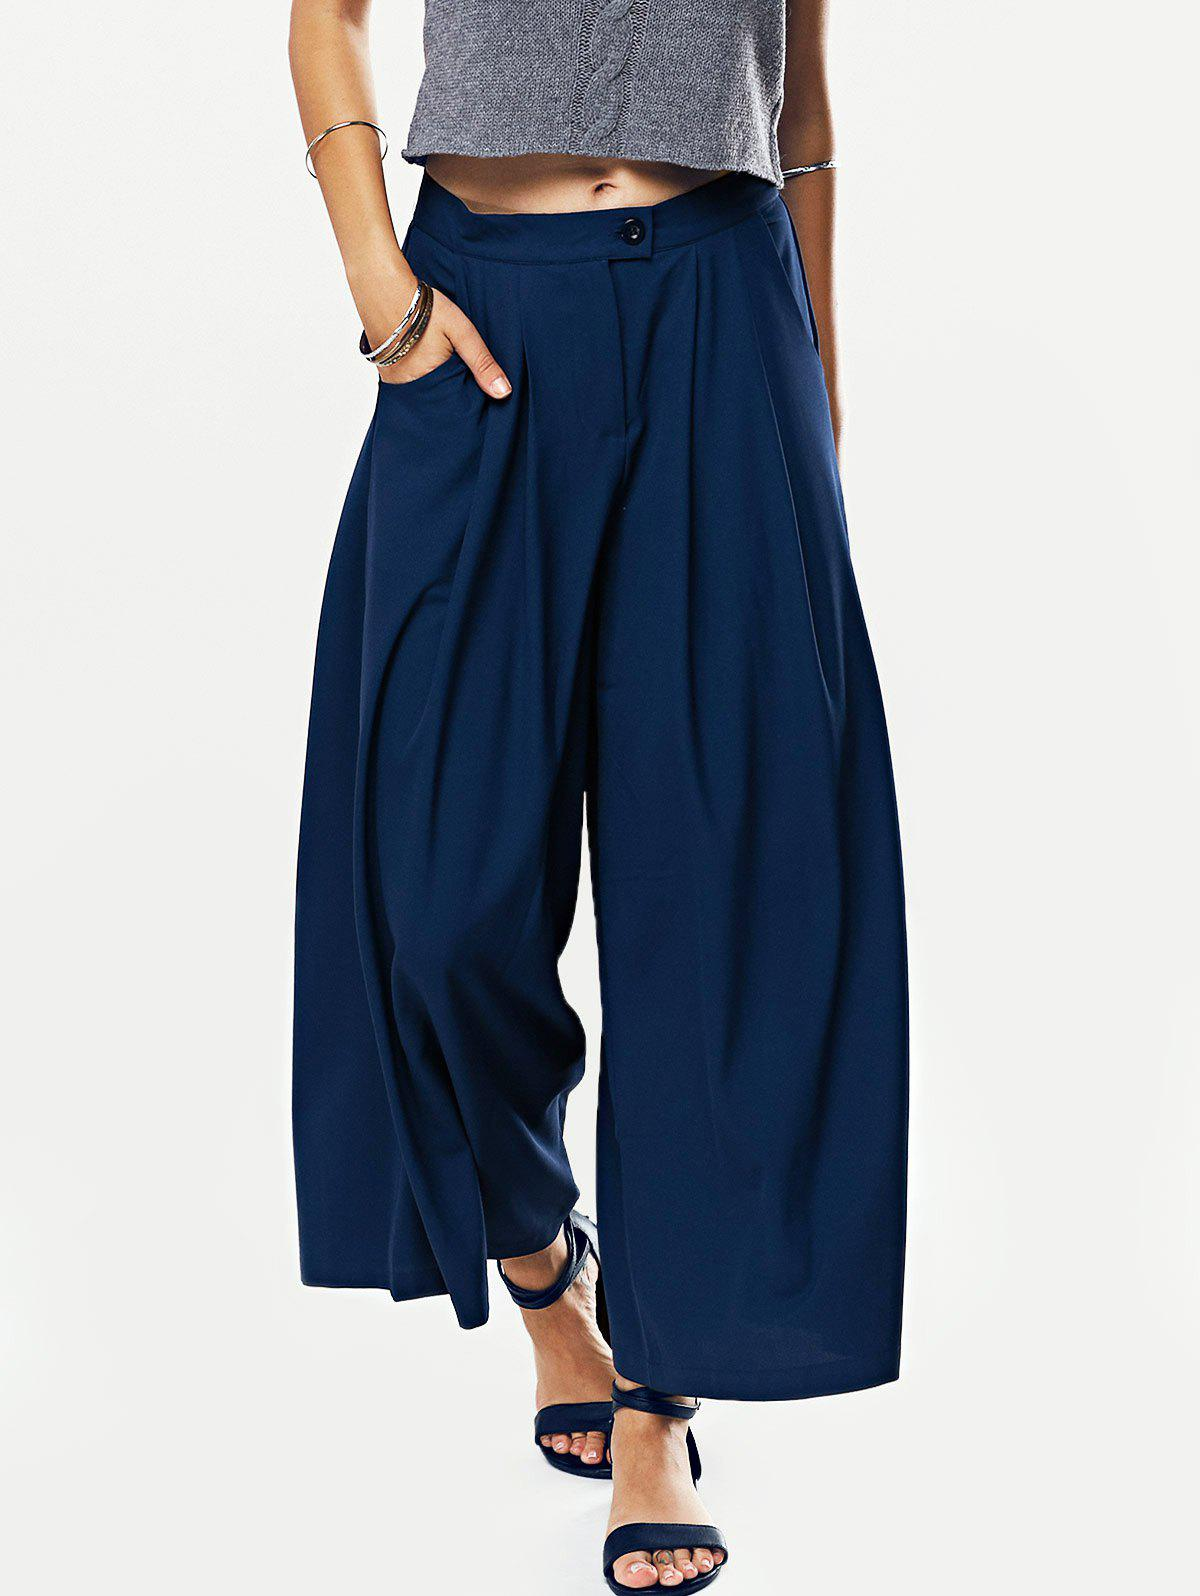 Solid Color Loose Fitting Wide Leg Pants